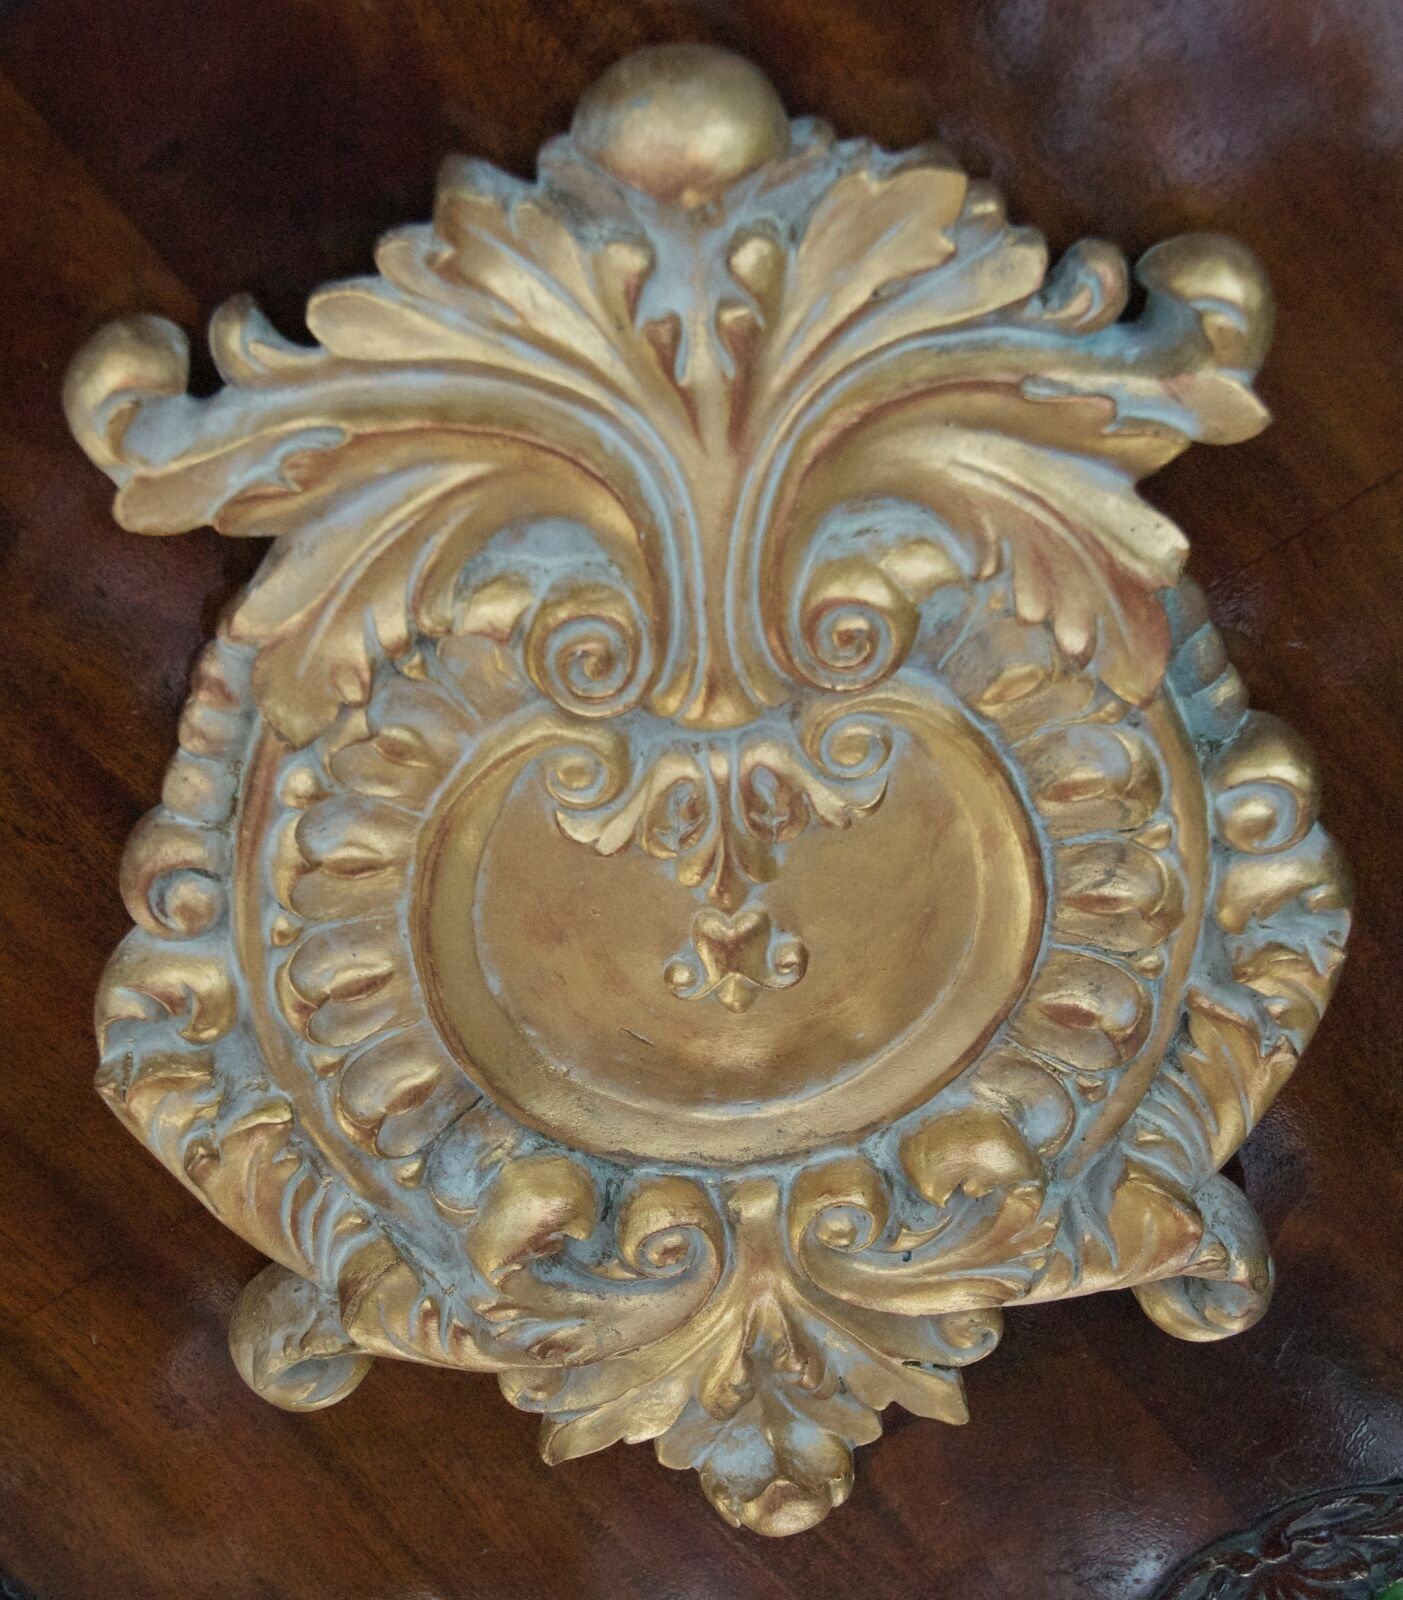 BAROQUE VICTORIAN WALL PLAQUE CHREST HOLLOW PLASTIC RESIN ANTIQUED Gold 14  HIGH